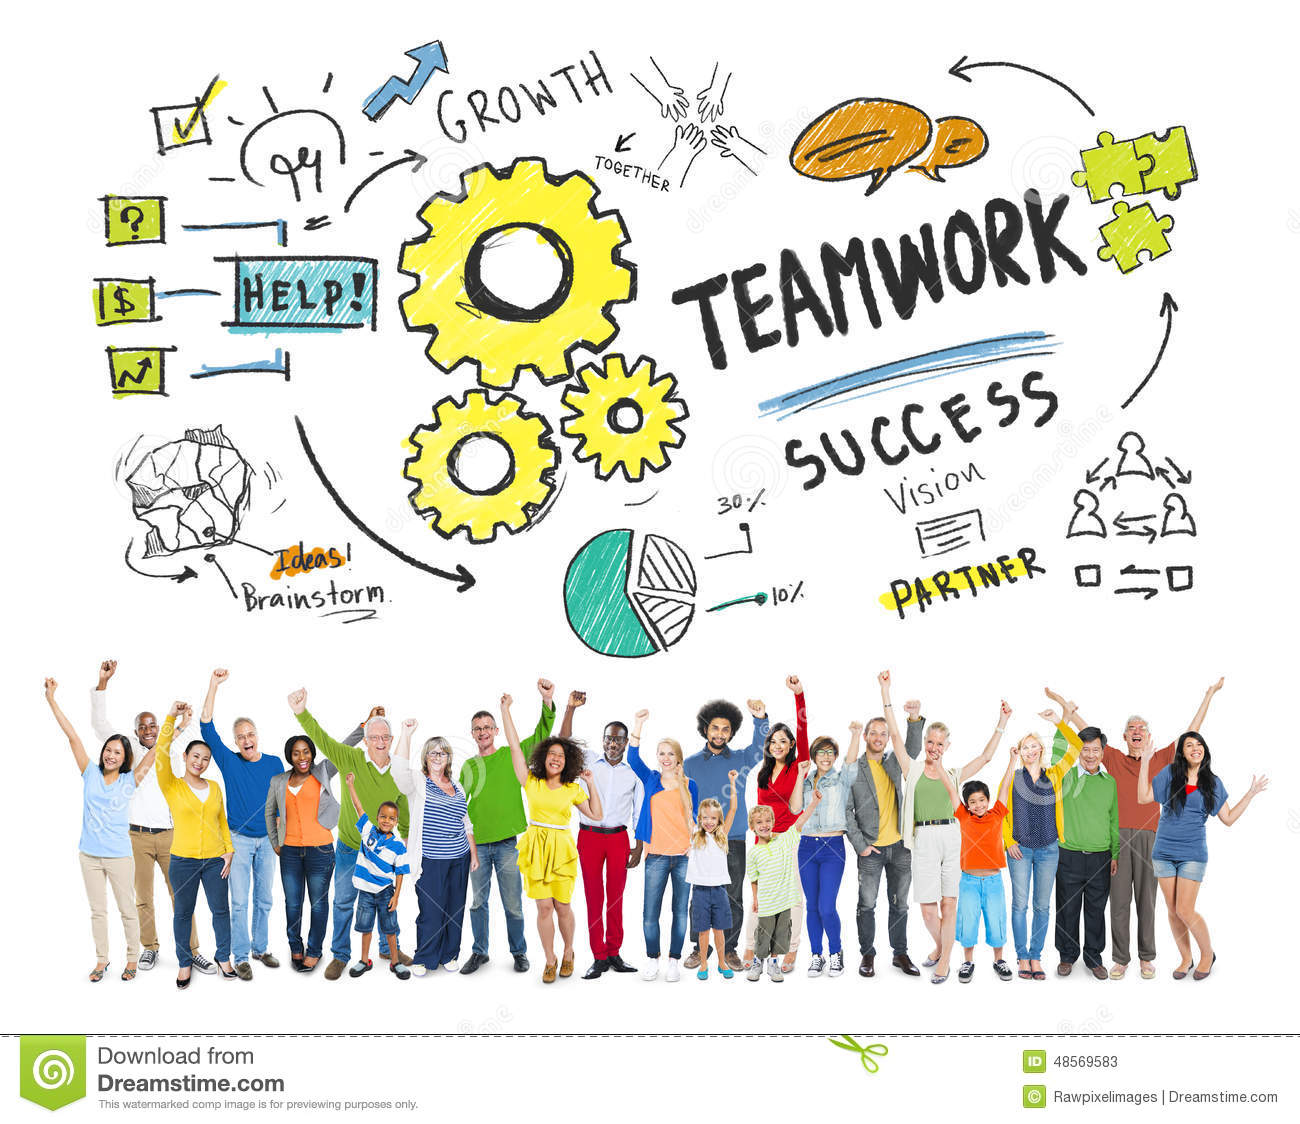 teamwork ensures community success Although teamwork is frequently the most efficient way to complete a big project, many managers struggle to lead a cohesive team a successful team knows always to tell the truth, no matter how difficult evaluate each team member individually to ensure that the role properly suits the employee.